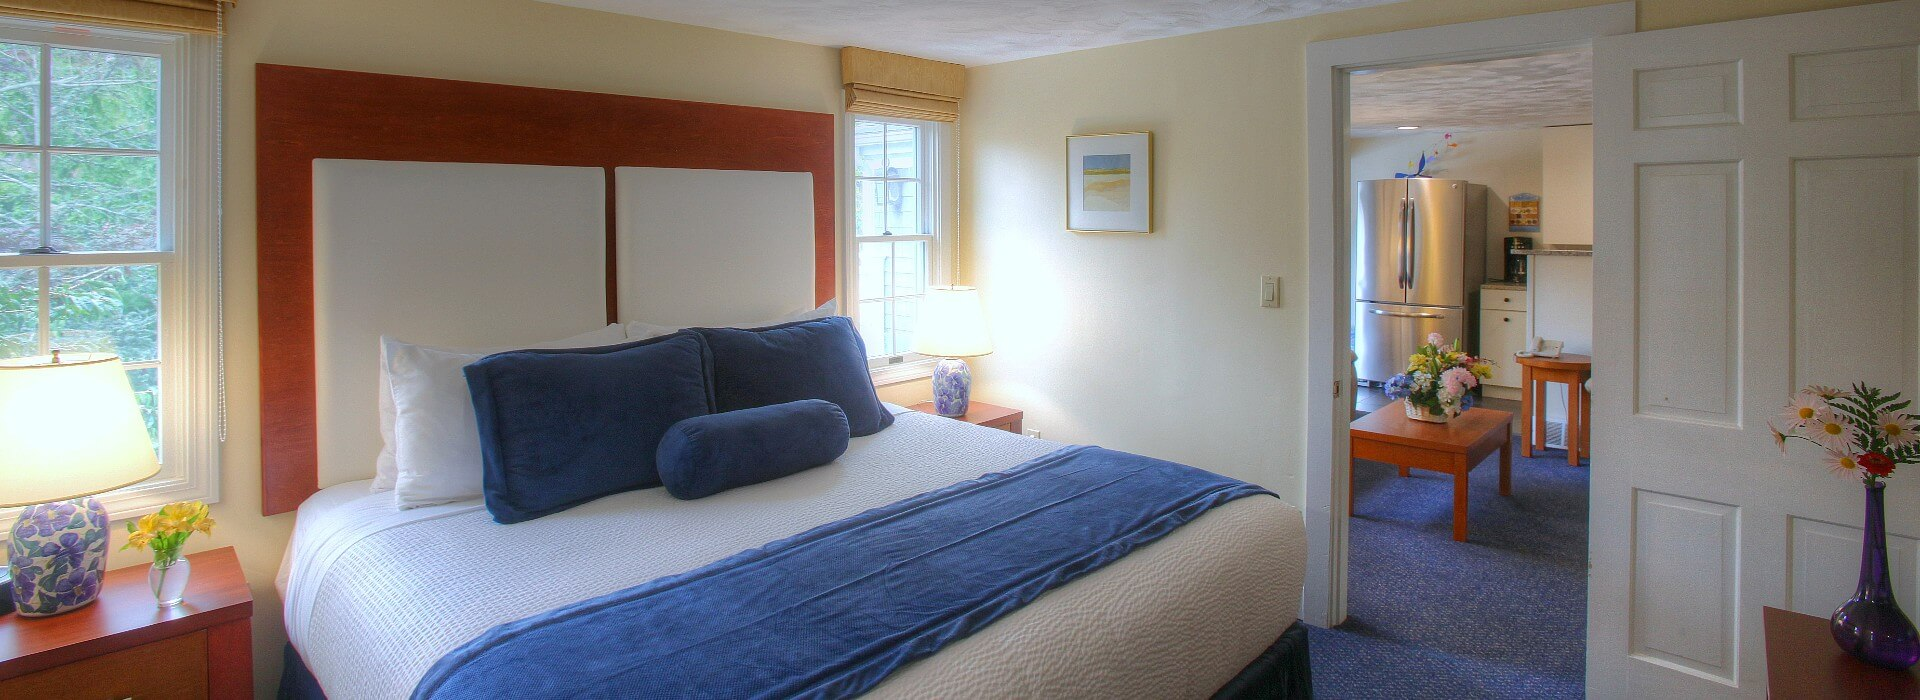 Cottage bedroom with king bed, large windows and doorway into room with a kitchenette